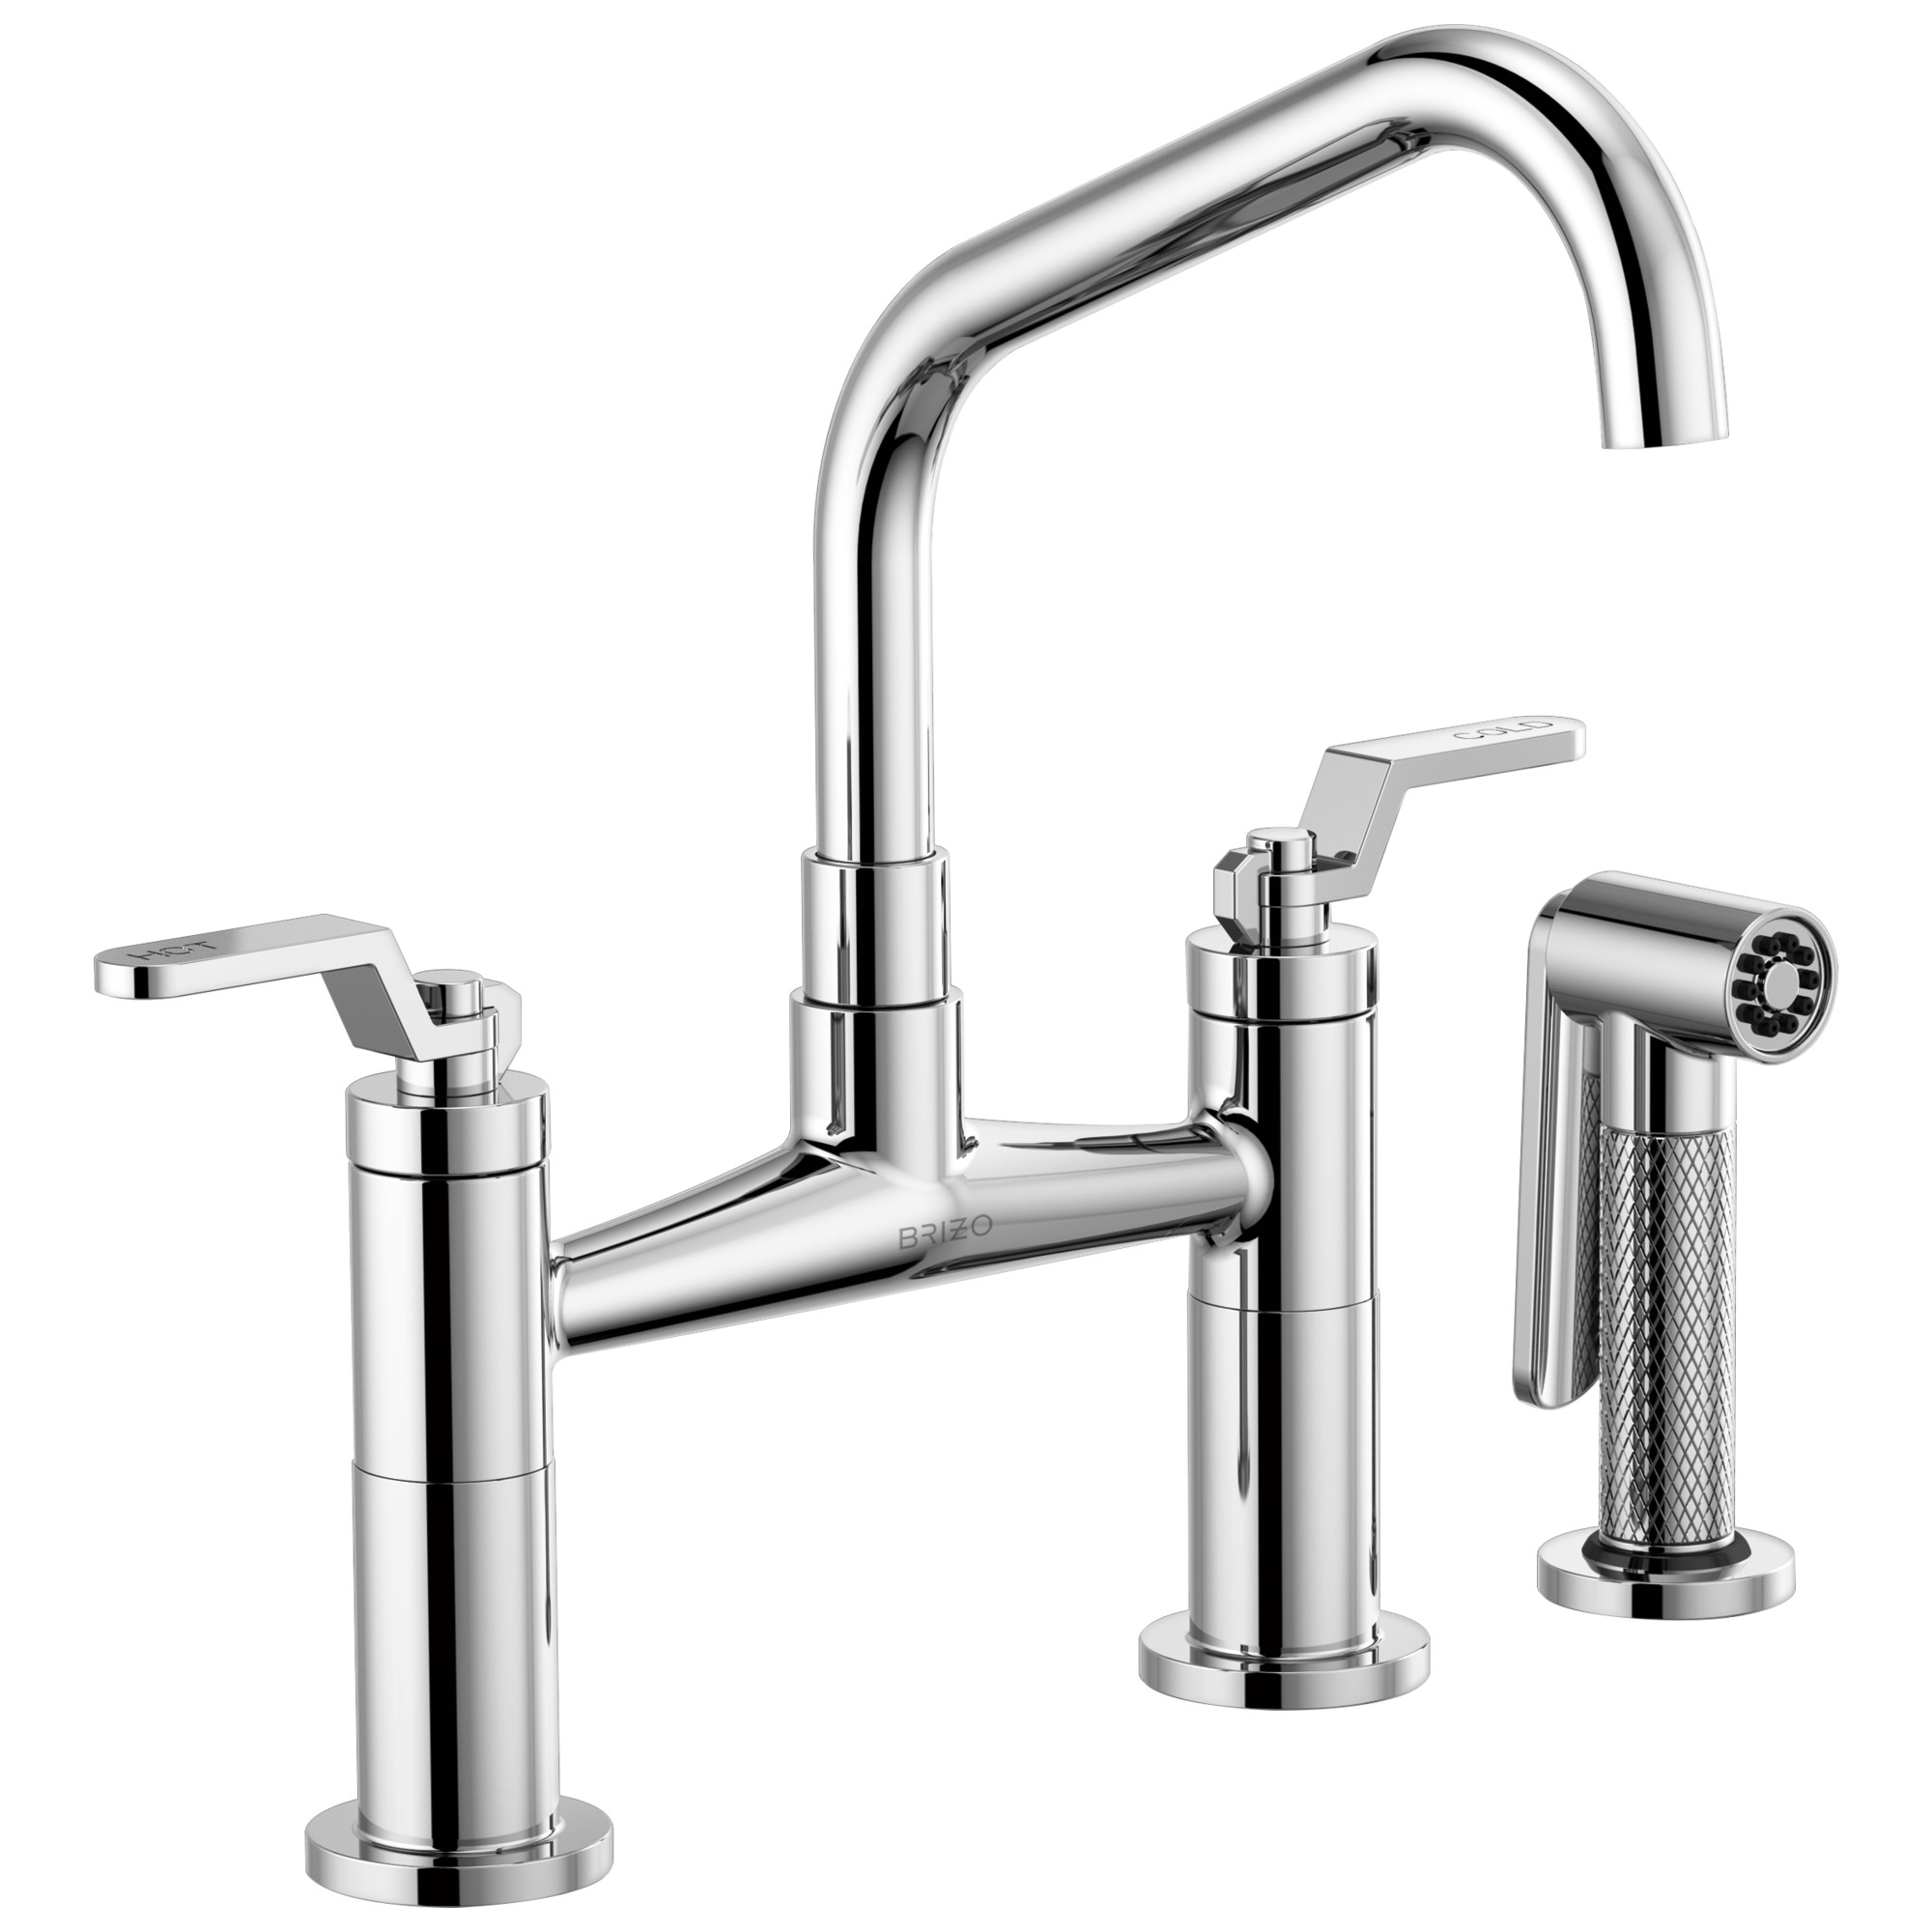 Brizo 62564LF-PC Litze Bridge Faucet with Angled Spout and Industrial Handle - Chrome